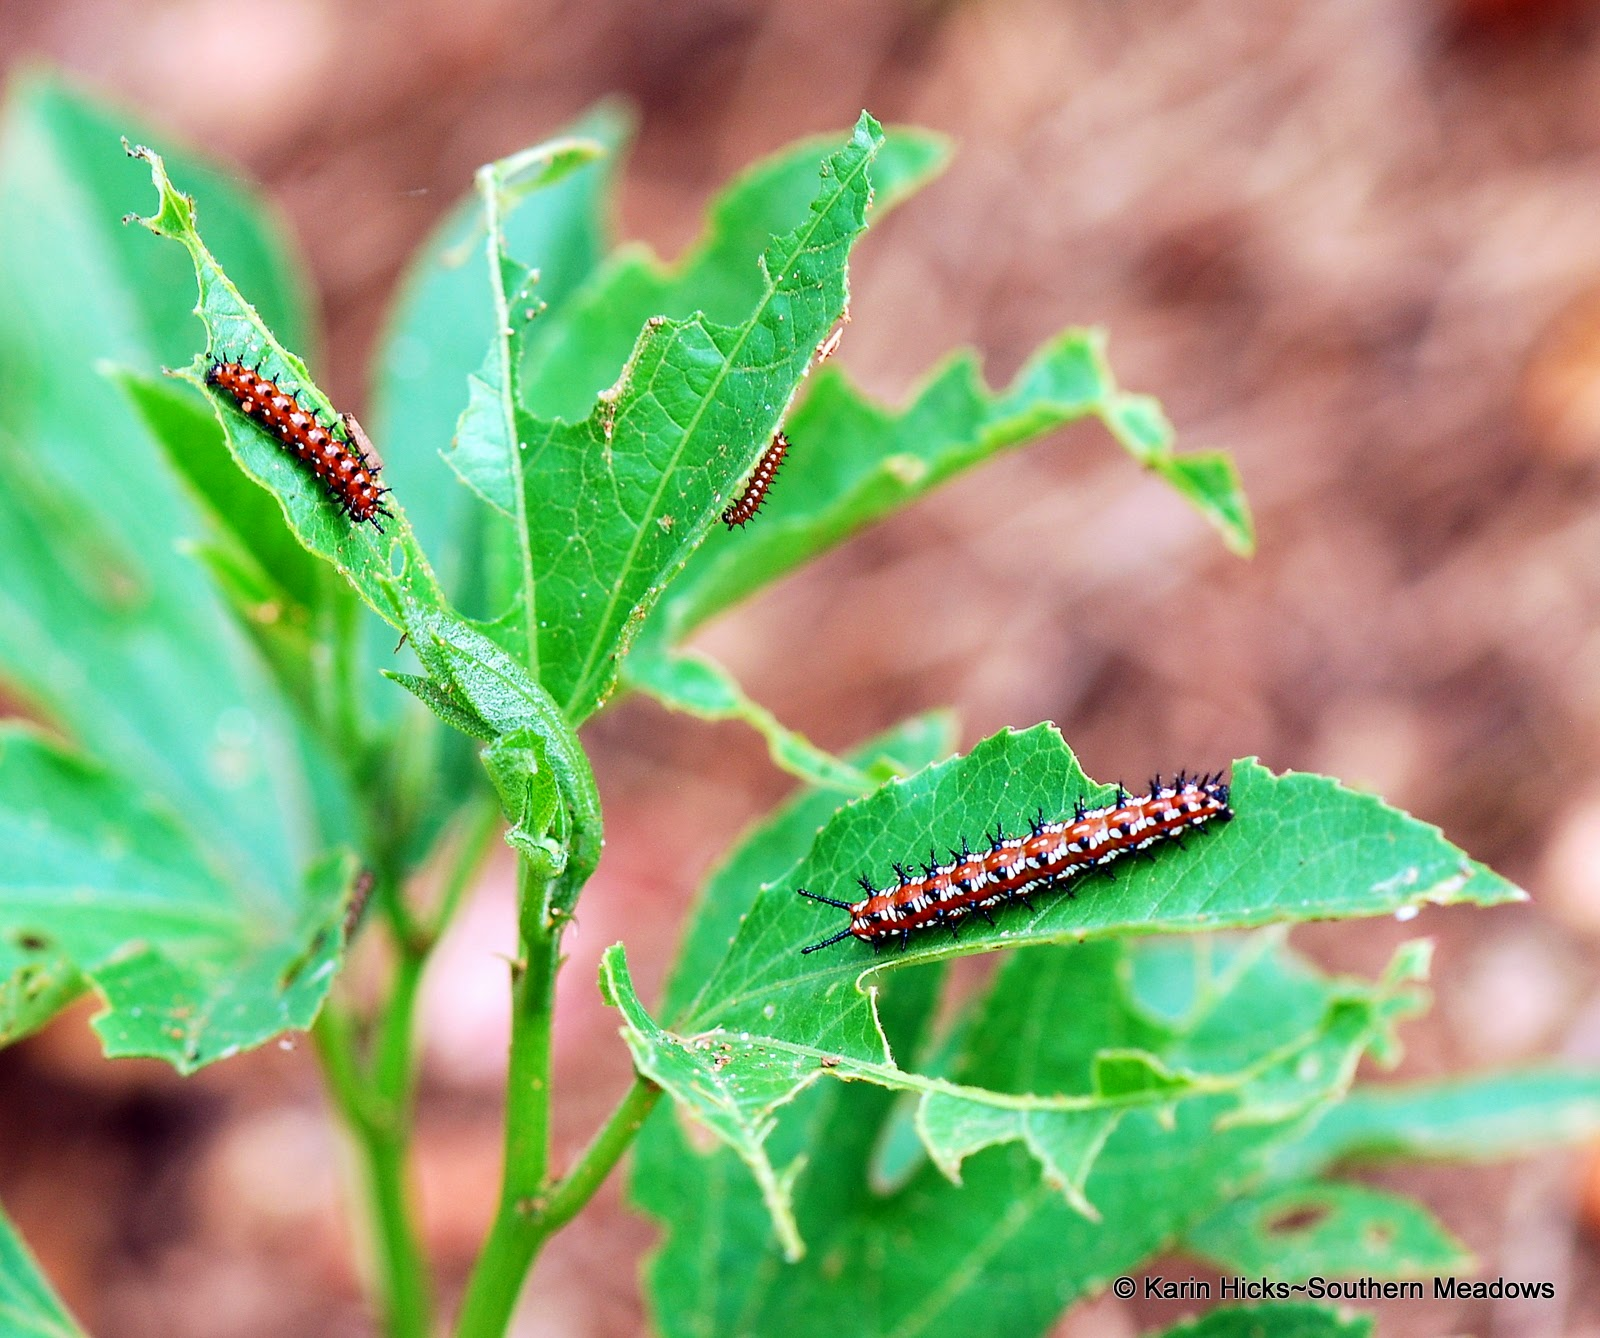 three instars of fritillary caterpillars